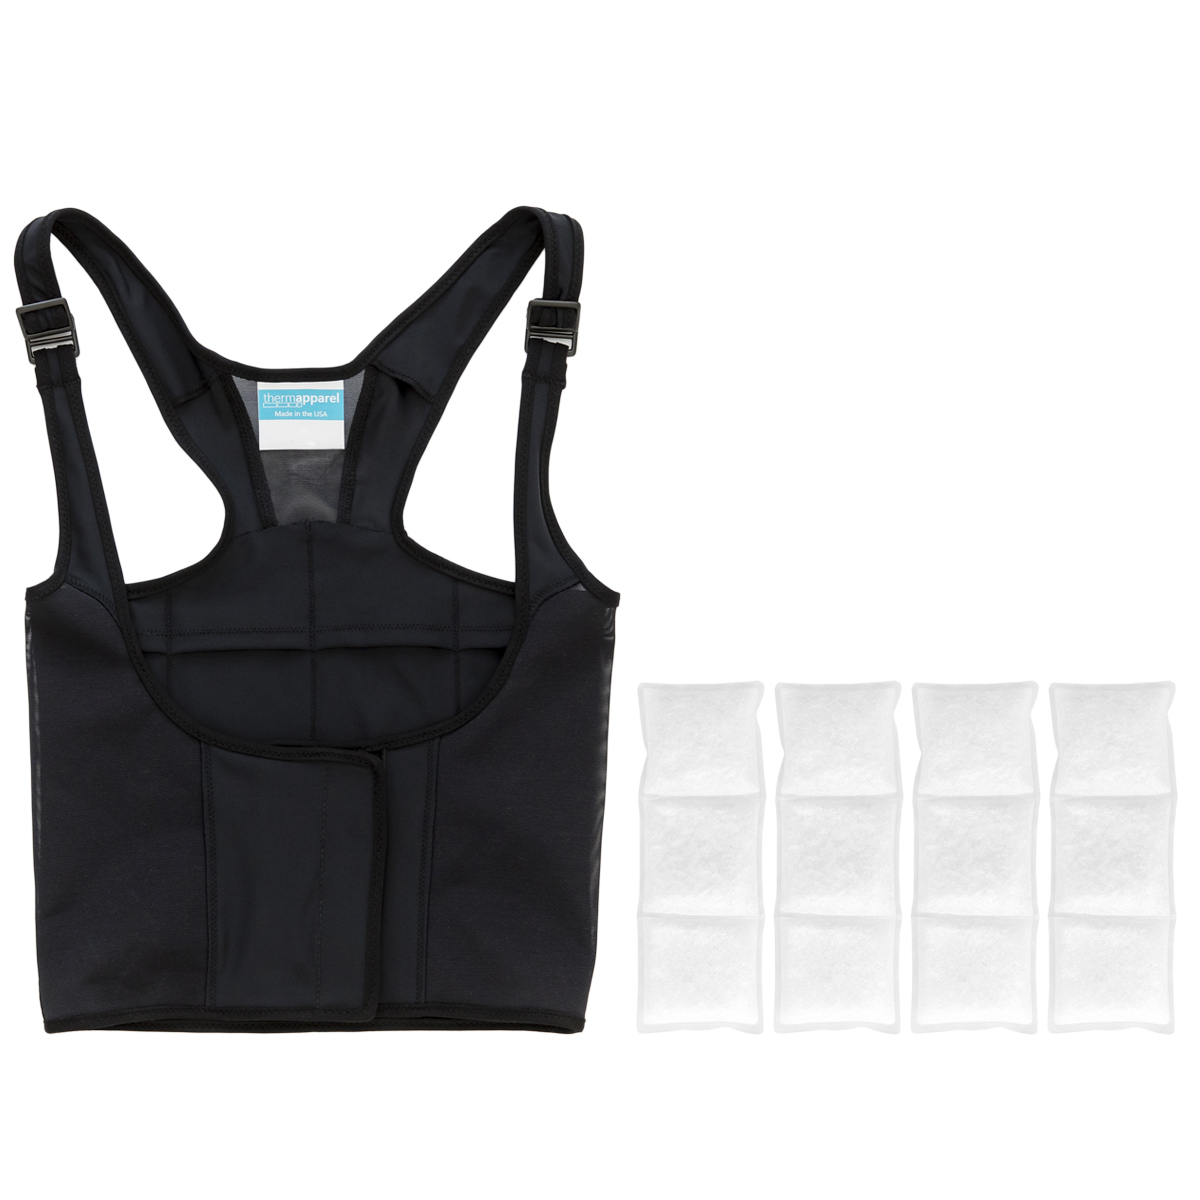 UnderCool cooling vest in black